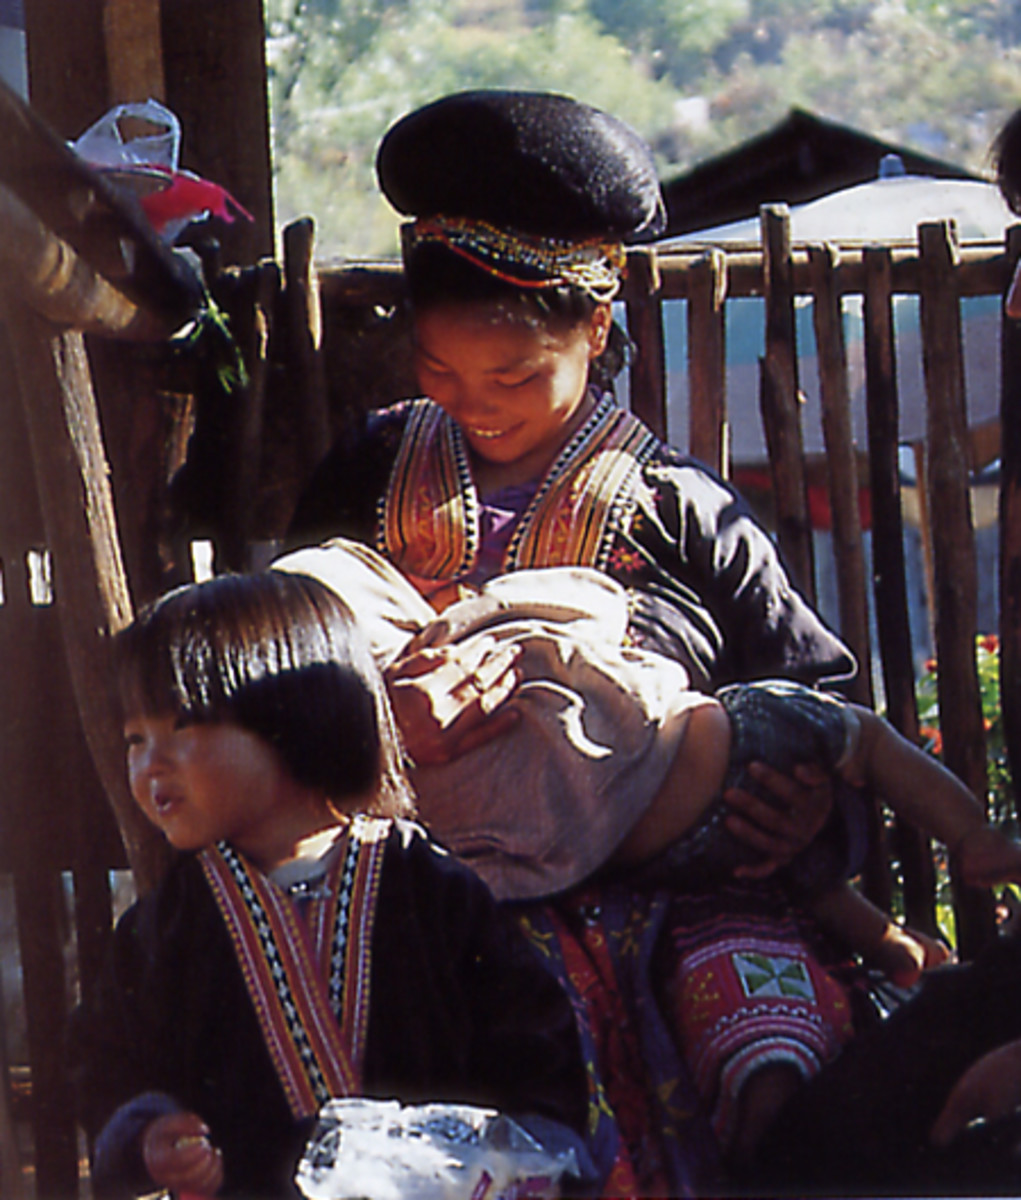 Hmong Family in Traditional Dress